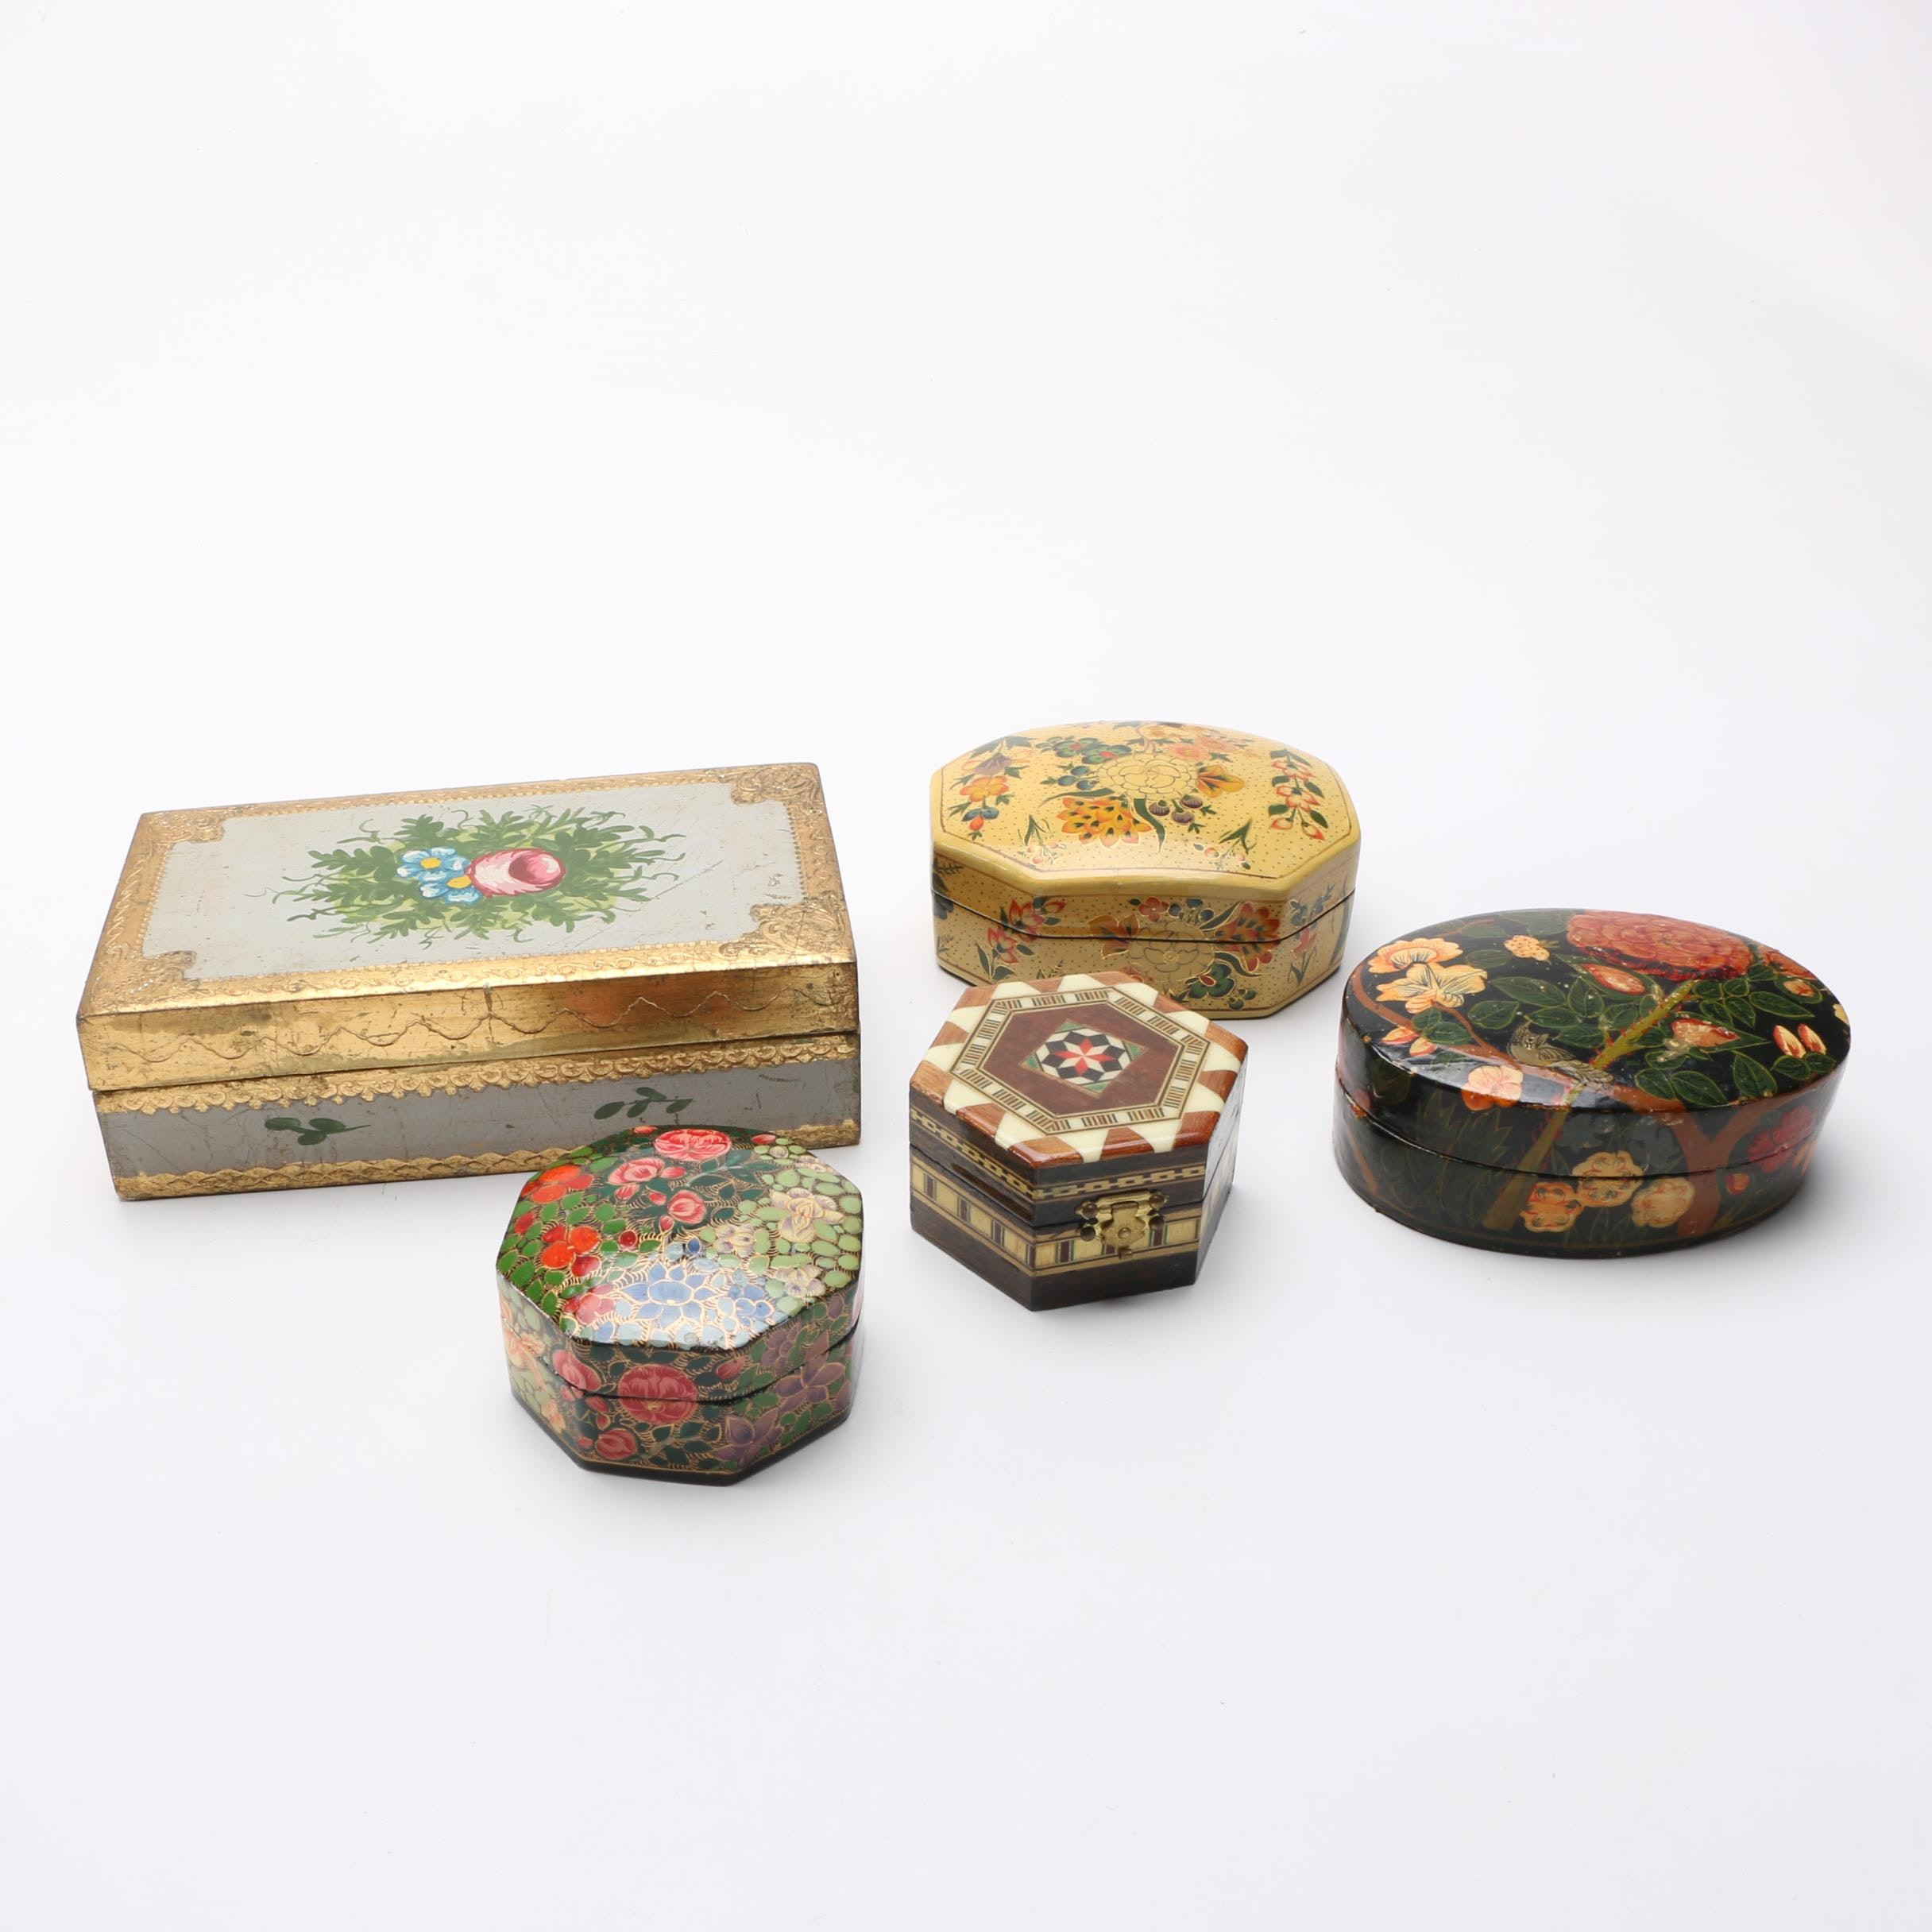 Vintage Handmade Wooden Trinket Boxes From India and Italy